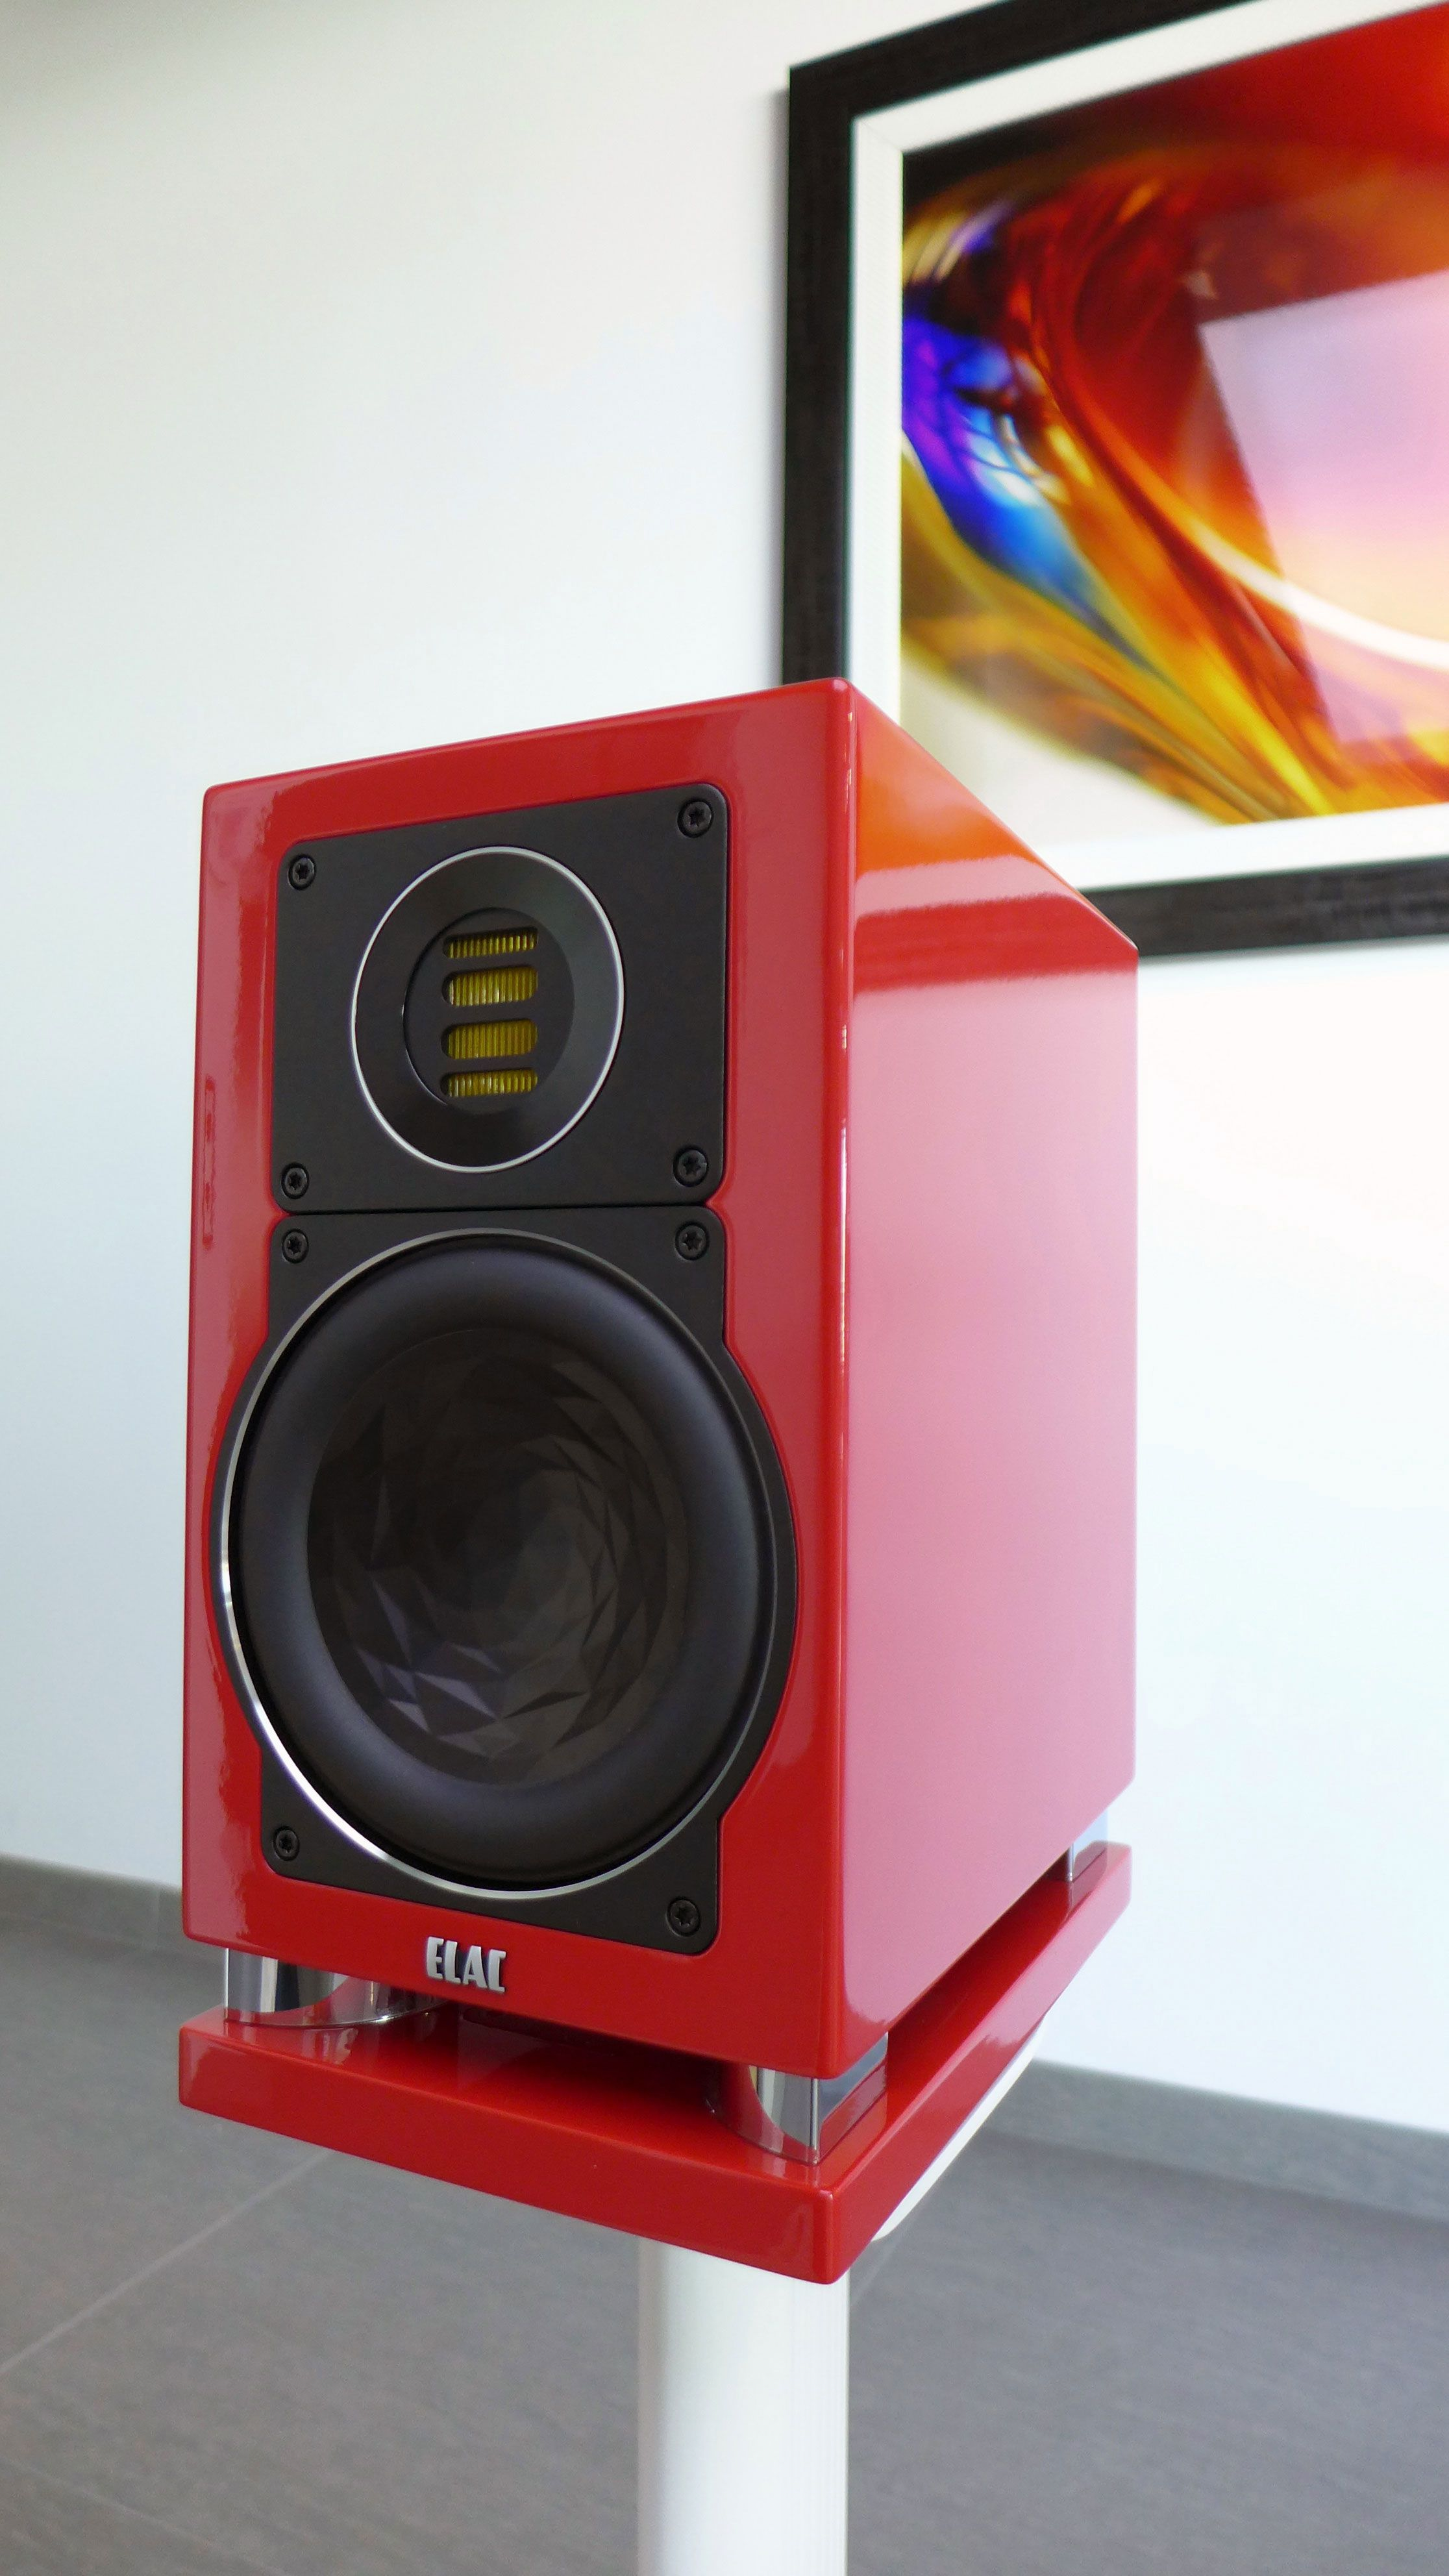 Rutherford Audio News A Glimpse of Custom Porsche ELAC Speakers